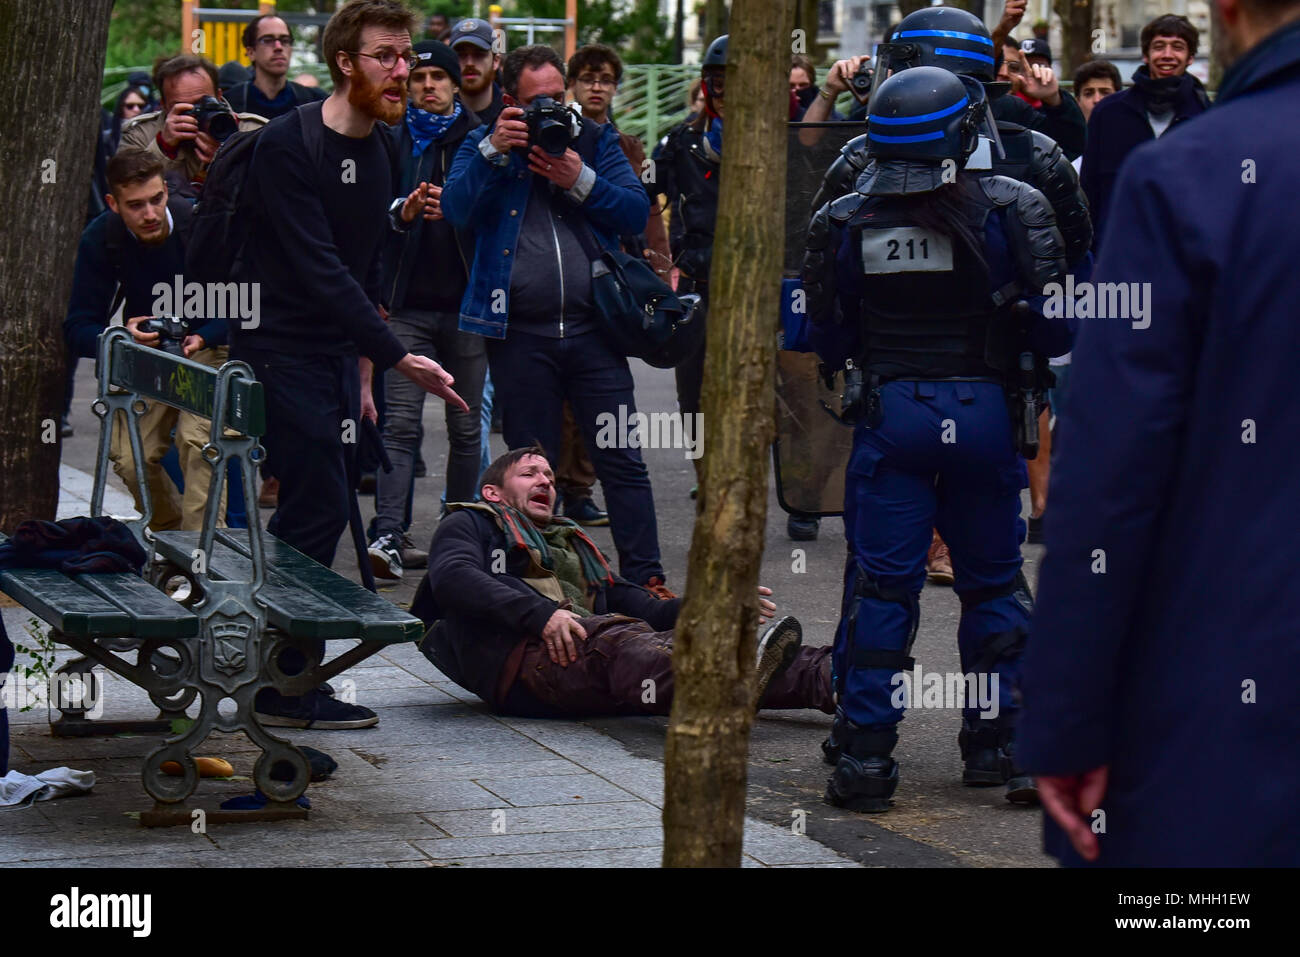 Paris, France. 1st May 2018. Paris police clash with protesters as demonstrations turn violent. PICTURED: A man is pushed to the ground by police. Credit: Peter Manning/Alamy Live News - Stock Image